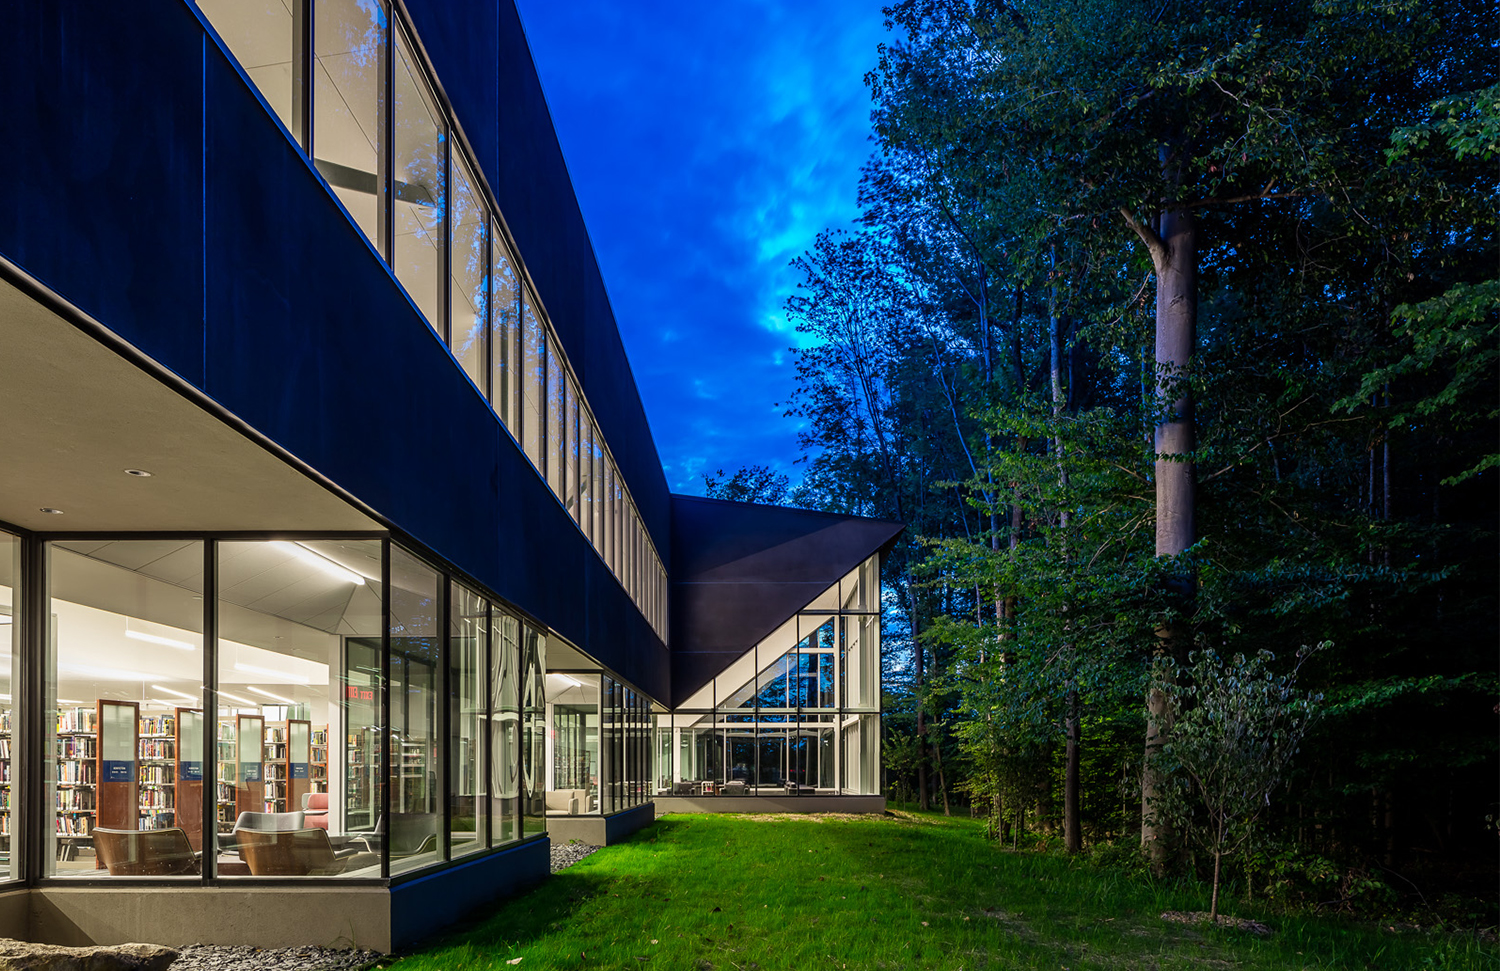 The north side of the building brings the outdoors in, connecting library patrons with nature and the woodlands beyond.